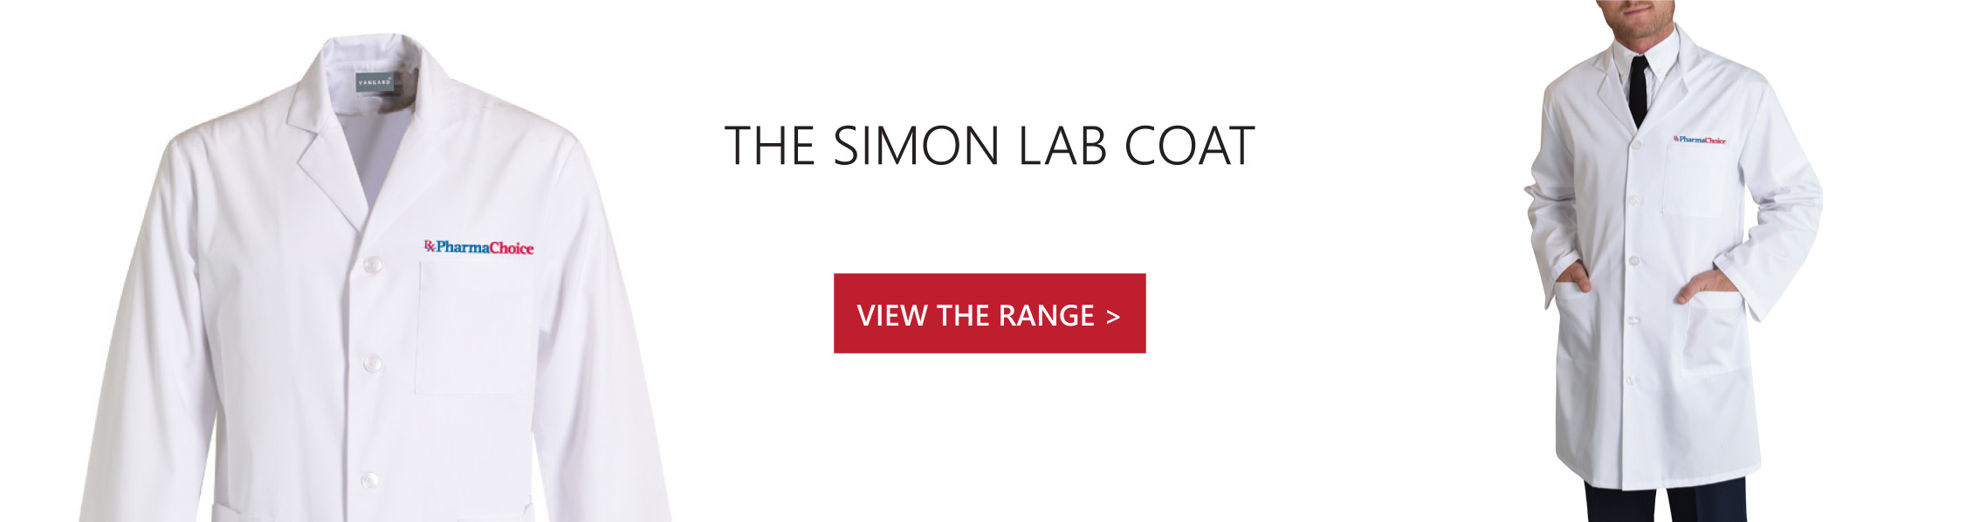 THE SIMON LAB COAT